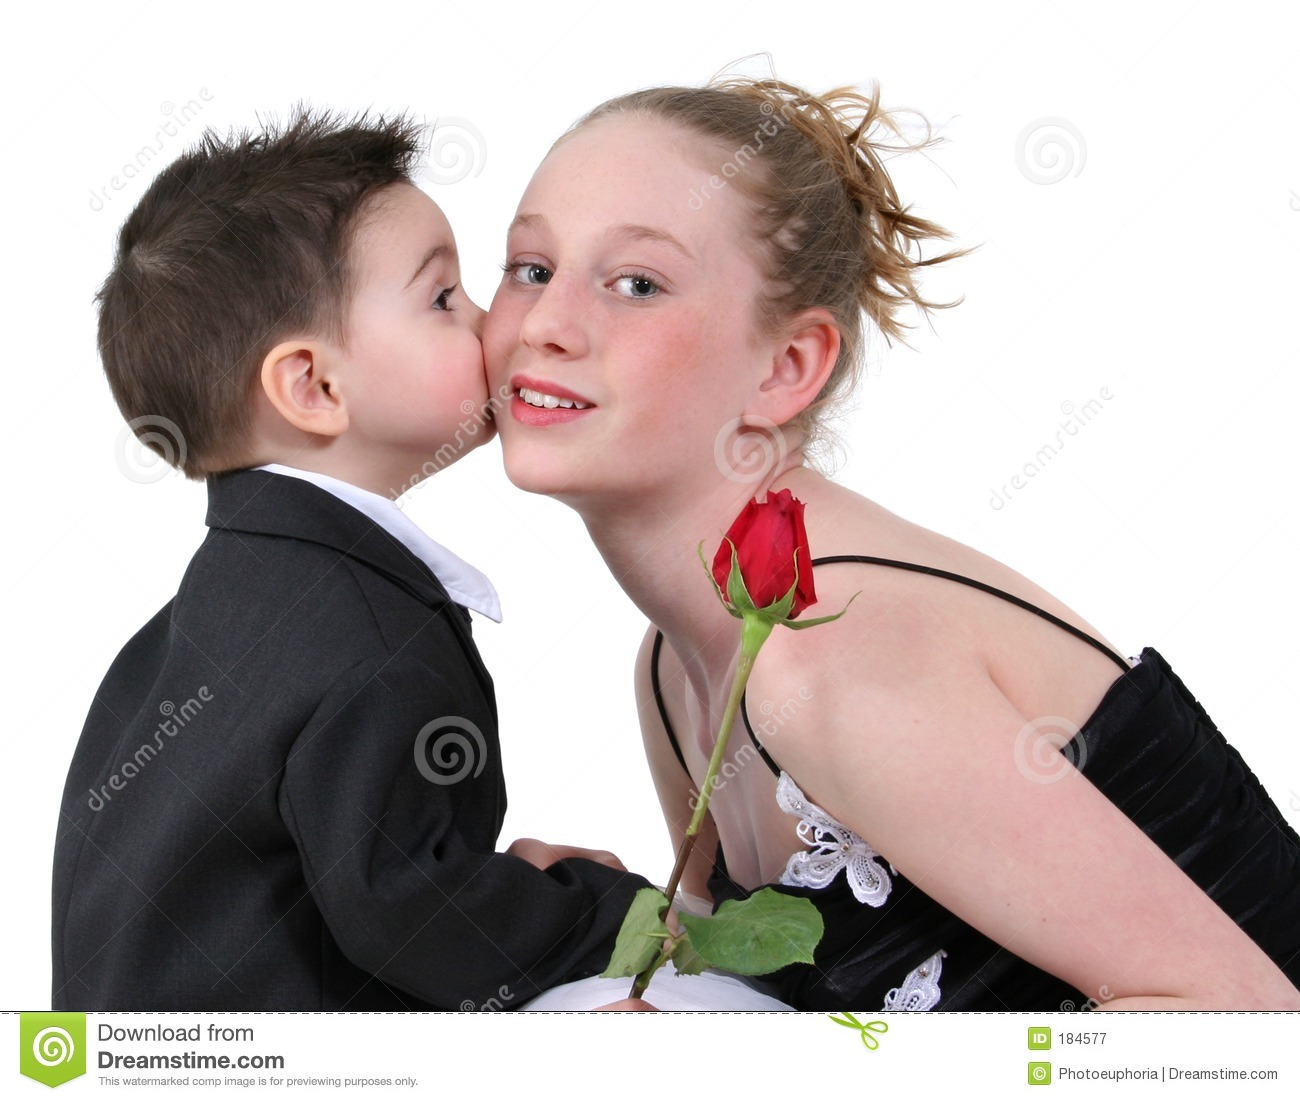 Now Boys Kiss And Makeup: How To Kiss A Boy For The First Time With Pictures, Makeup